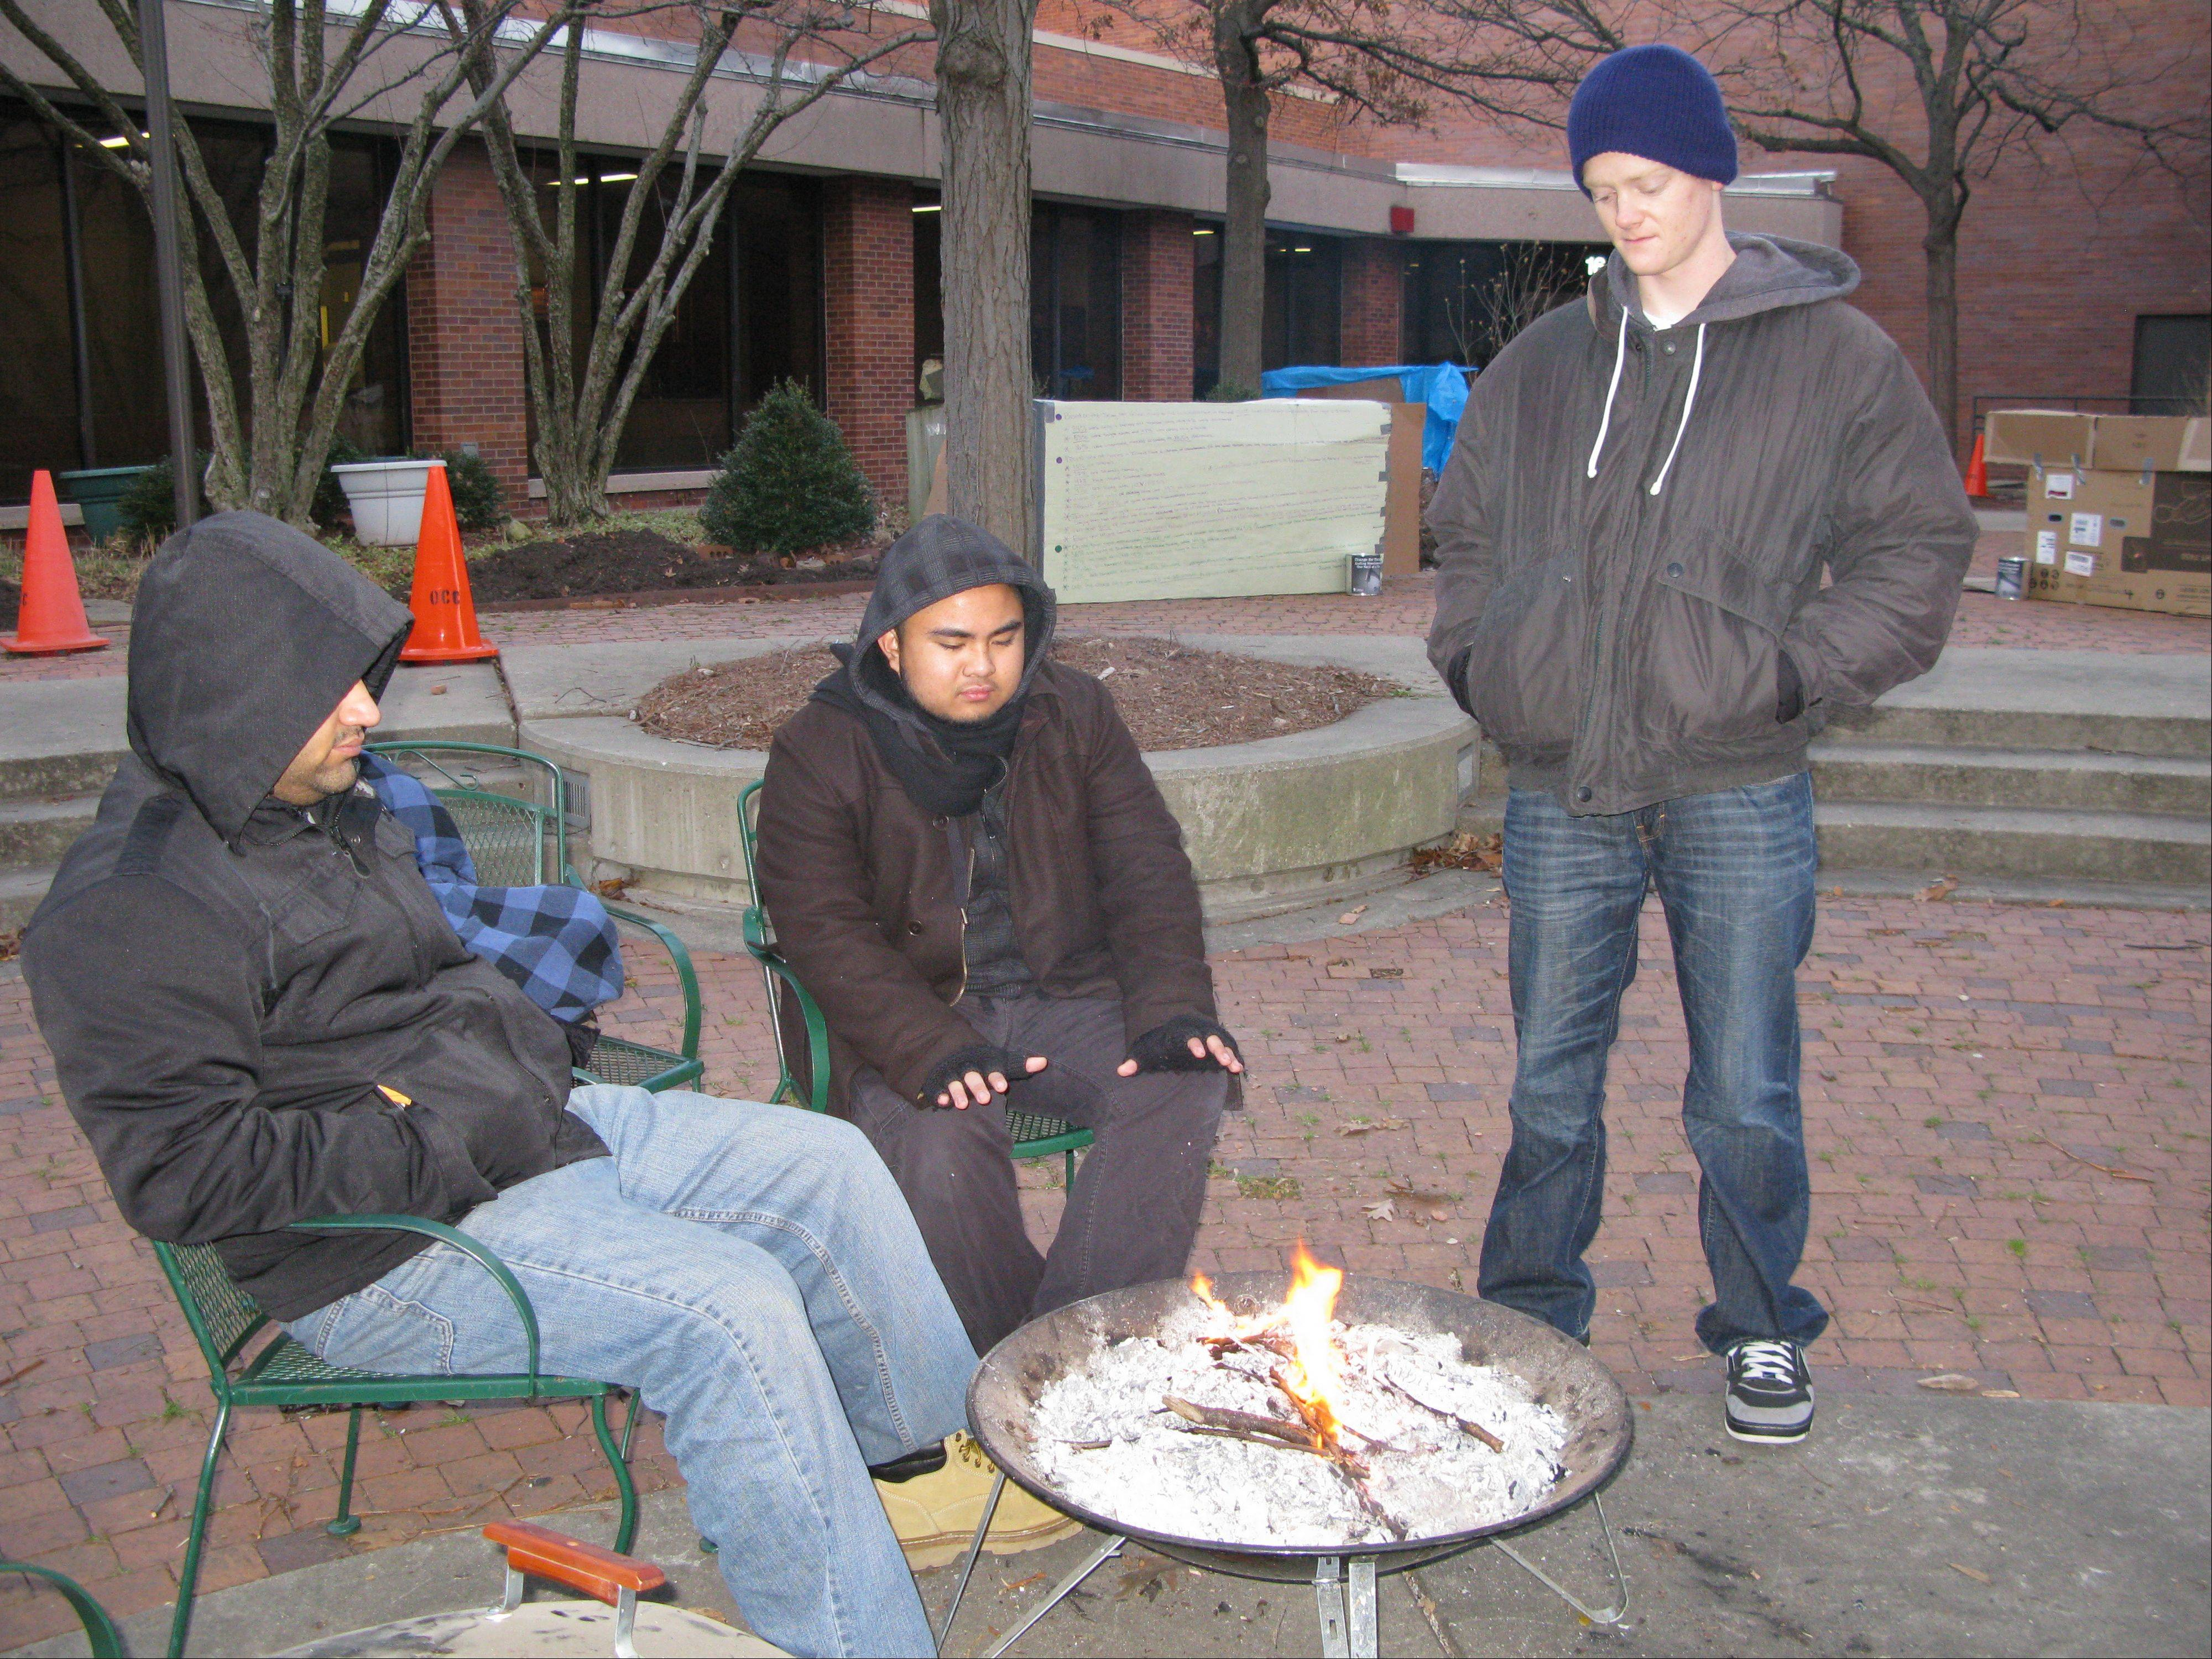 From left, Oakton Community College students Sahil Pruthi, Jonathan Narcise and Ryan Alm huddle around a fire Wednesday morning to keep warm after spending a night out in the cold to experience firsthand what it would be like to be homeless. Roughly 27 students stayed through the night in shanties they built out of discarded cardboard boxes in the courtyard of the Des Plaines campus.